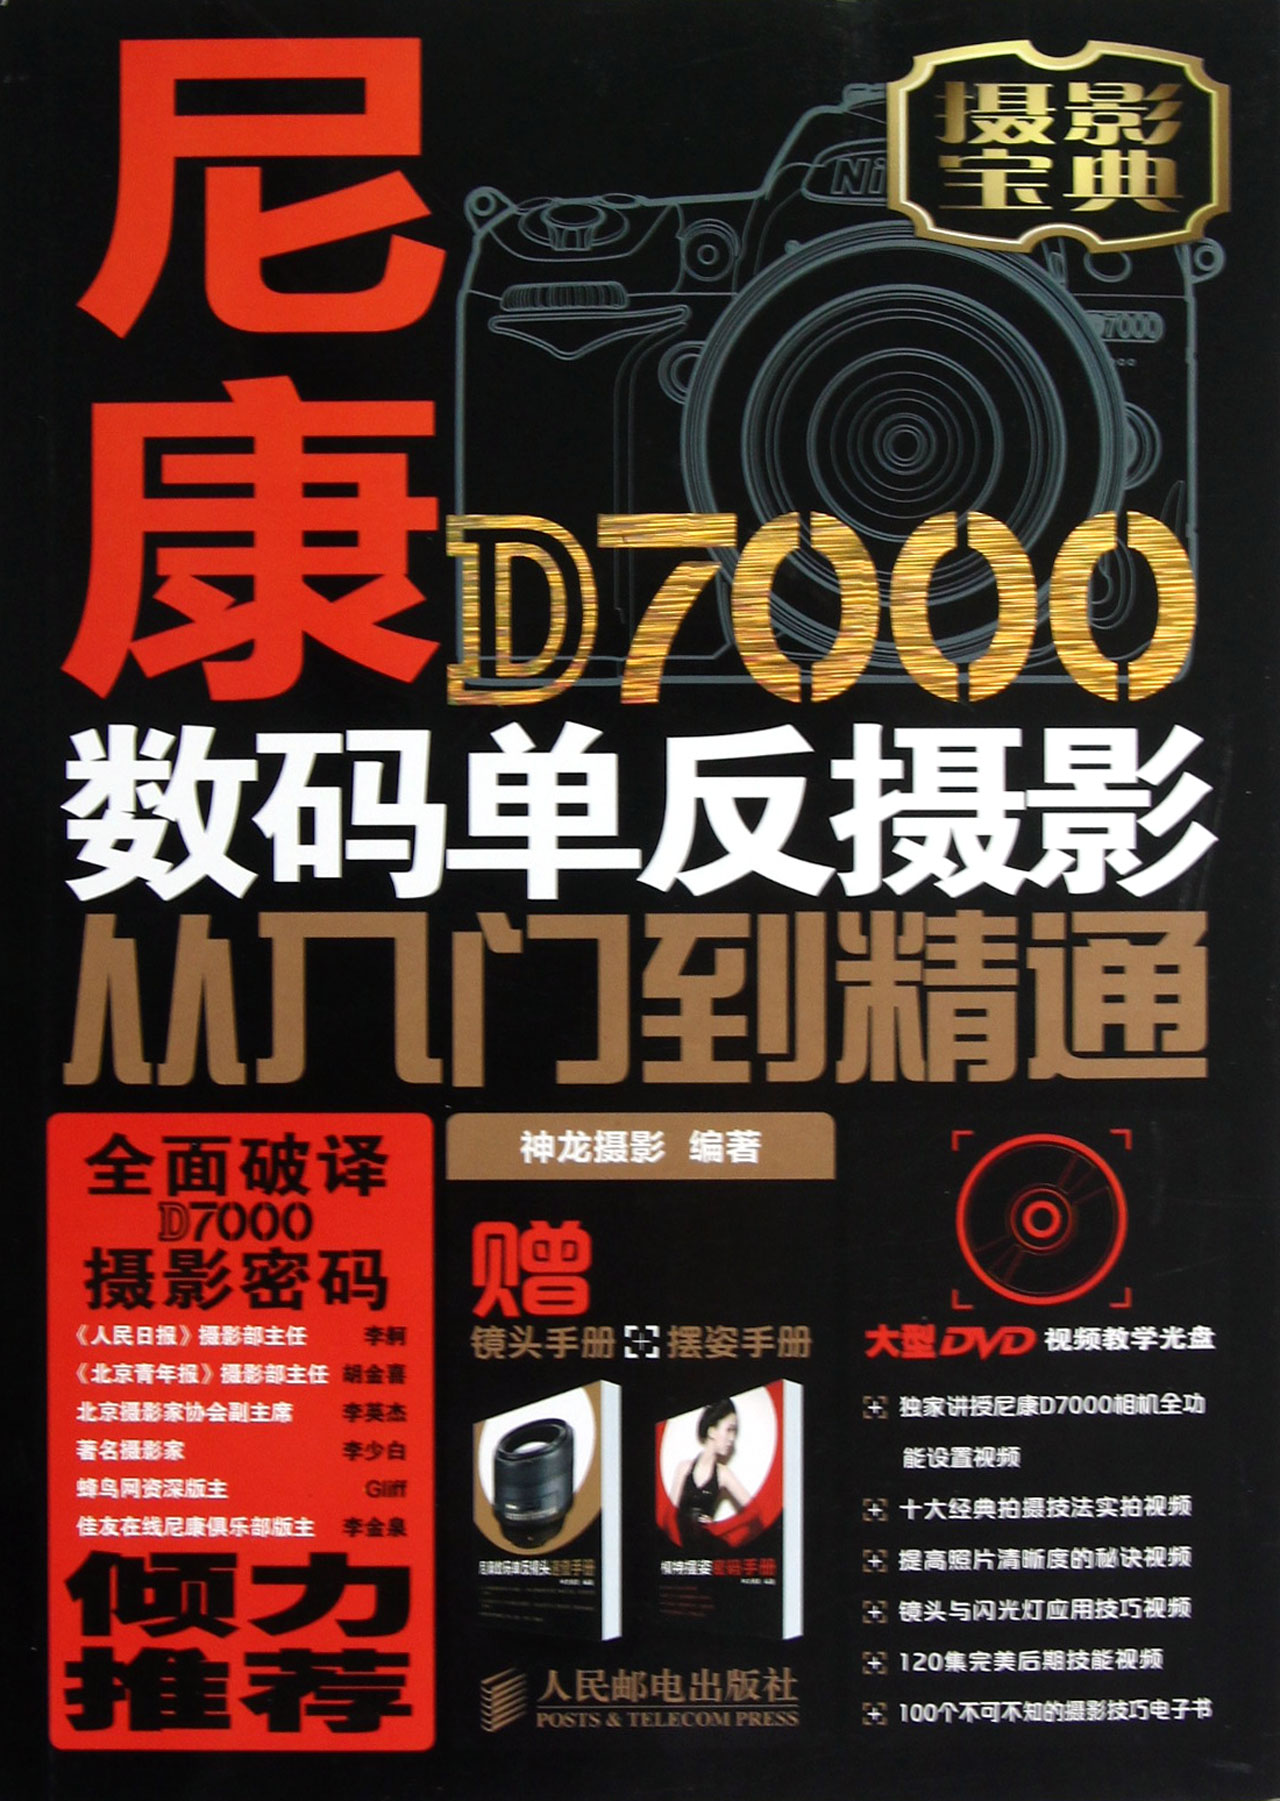 Nikon d7000 digital slr photography from entry to the proficient (with cd-rom photography collection) slr tutorial portrait photography portrait photography tutorial New york photography books photography tutorial teaching manual slr photography collection of coated paper